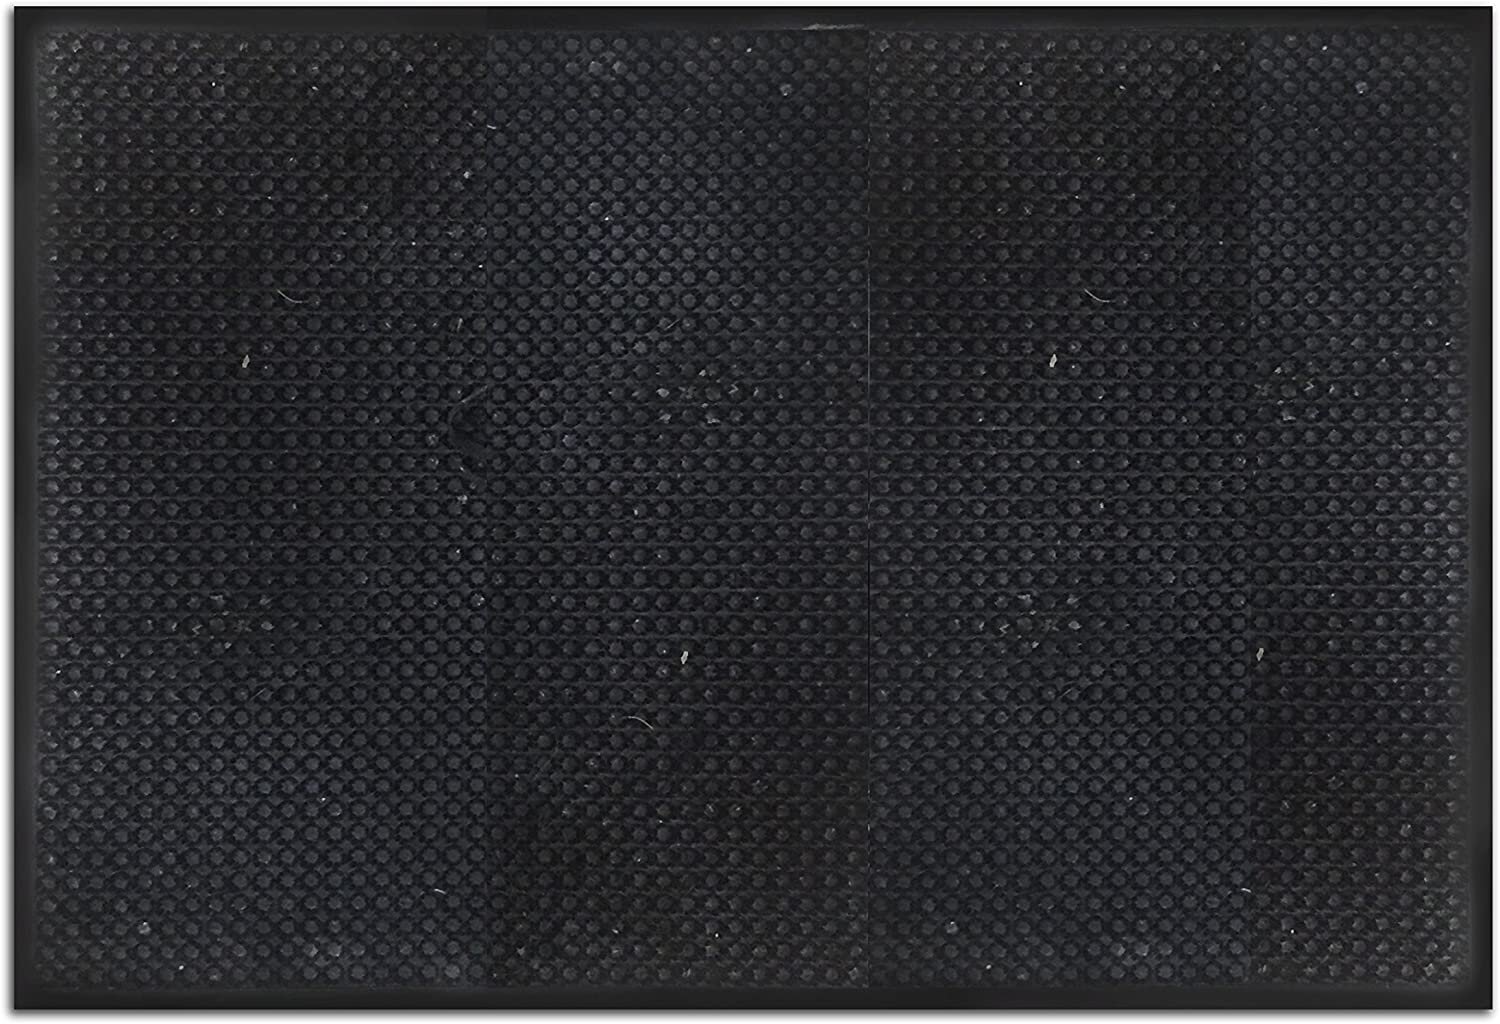 Resilia Trapper Entry Door Mat - for Scrapping Mud, Snow and Grass from shoes - Black, 24 Inches x 36 Inches